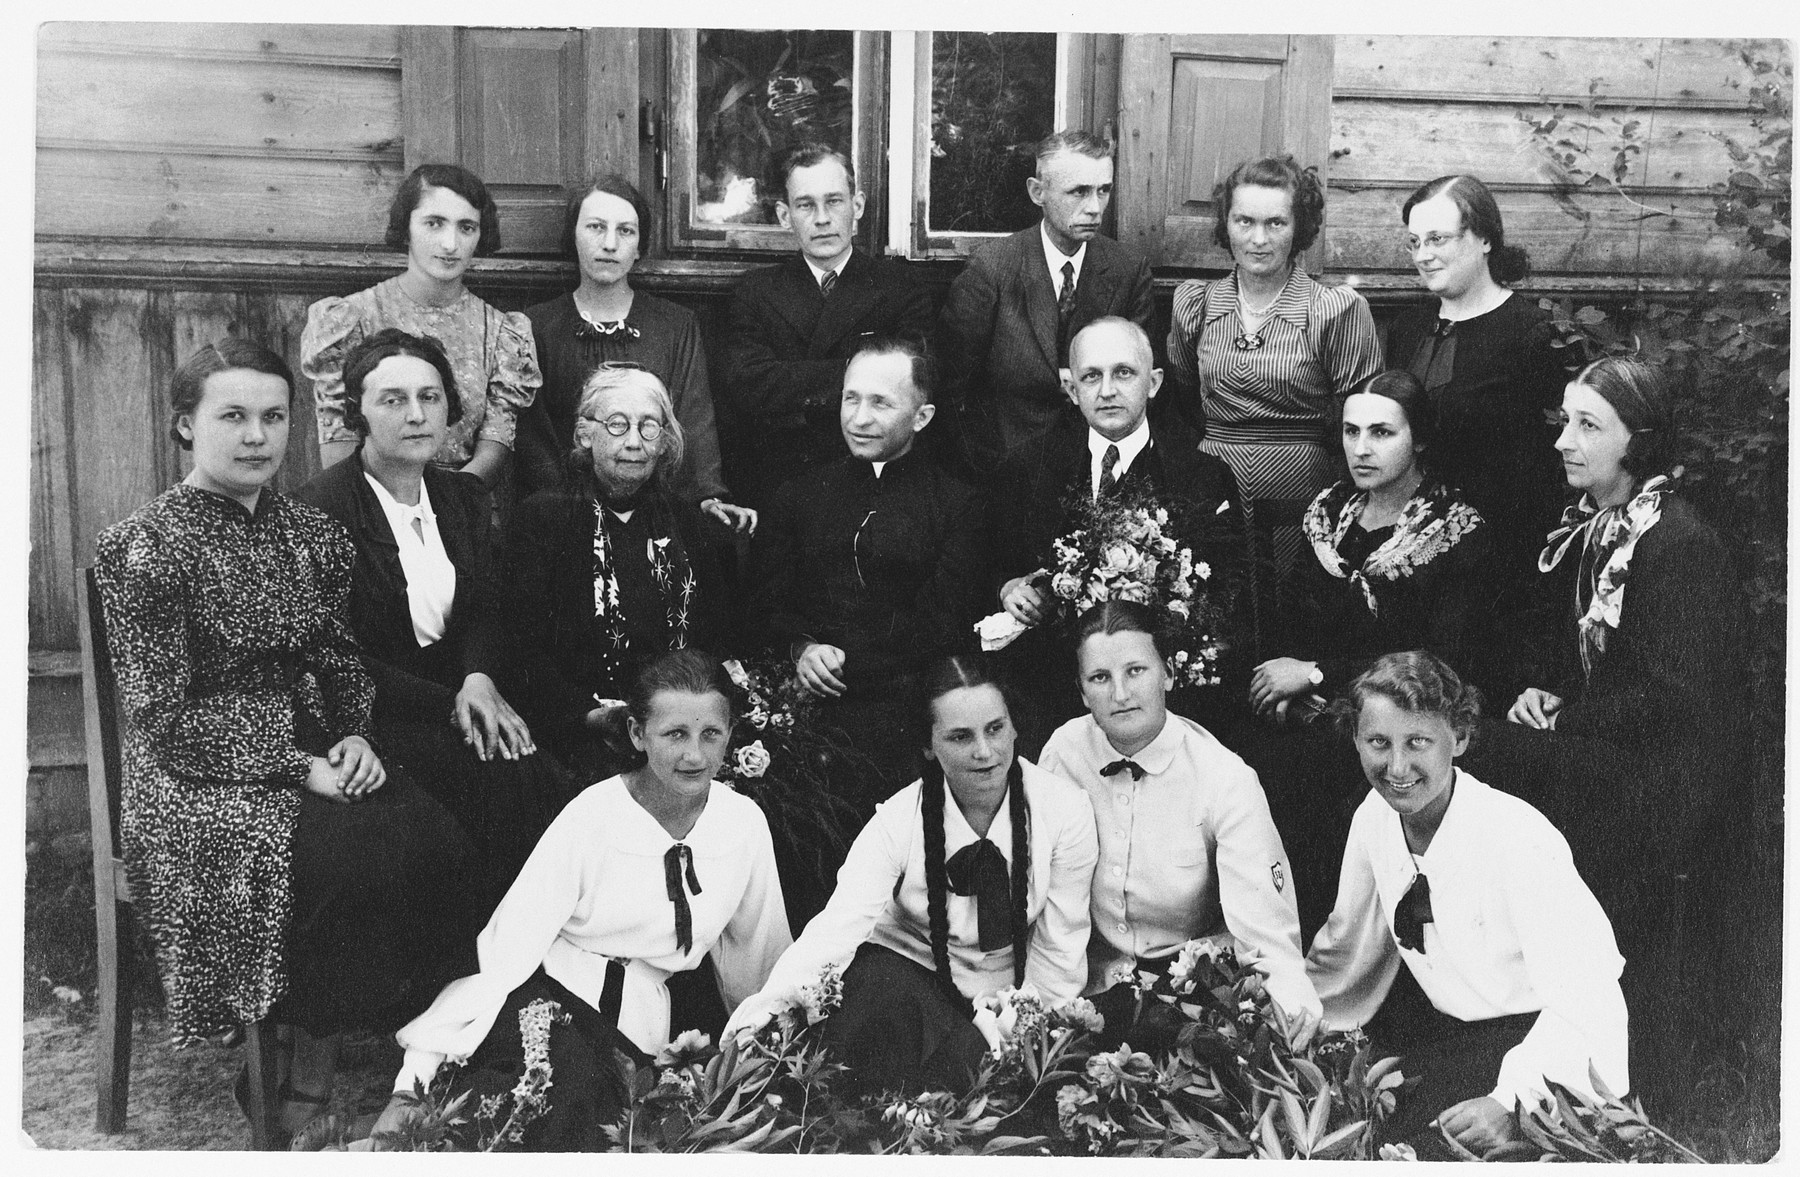 Group portrait of Polish and Jewish students and their teachers at a gymnasium in Lukow, Poland.  Among those pictured are: Jadwiga Dzido (front row on the right) and Zophia Szlendak (front row, second from the left).  During the German occupation both girls joined the resistance. Zophia was subsequently killed by the Gestapo.